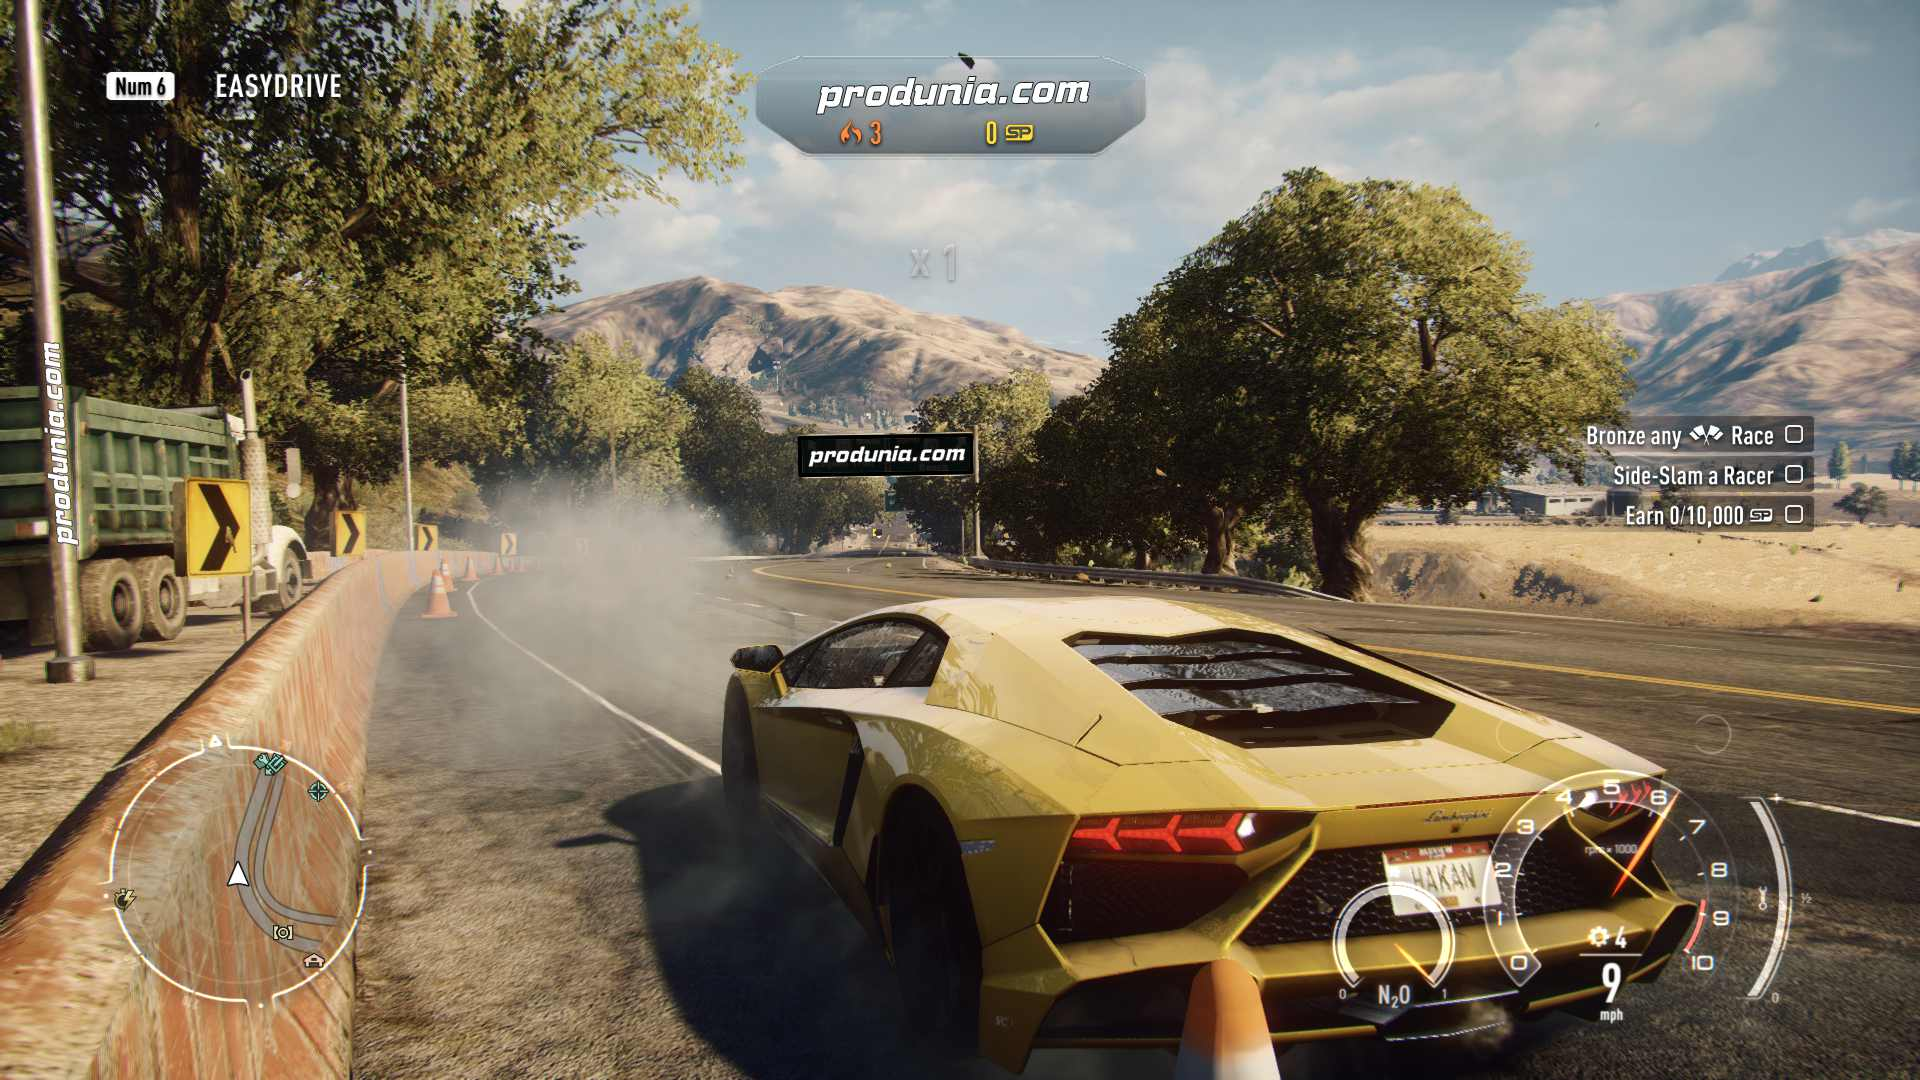 Nfs rivals highly compressed 100mb